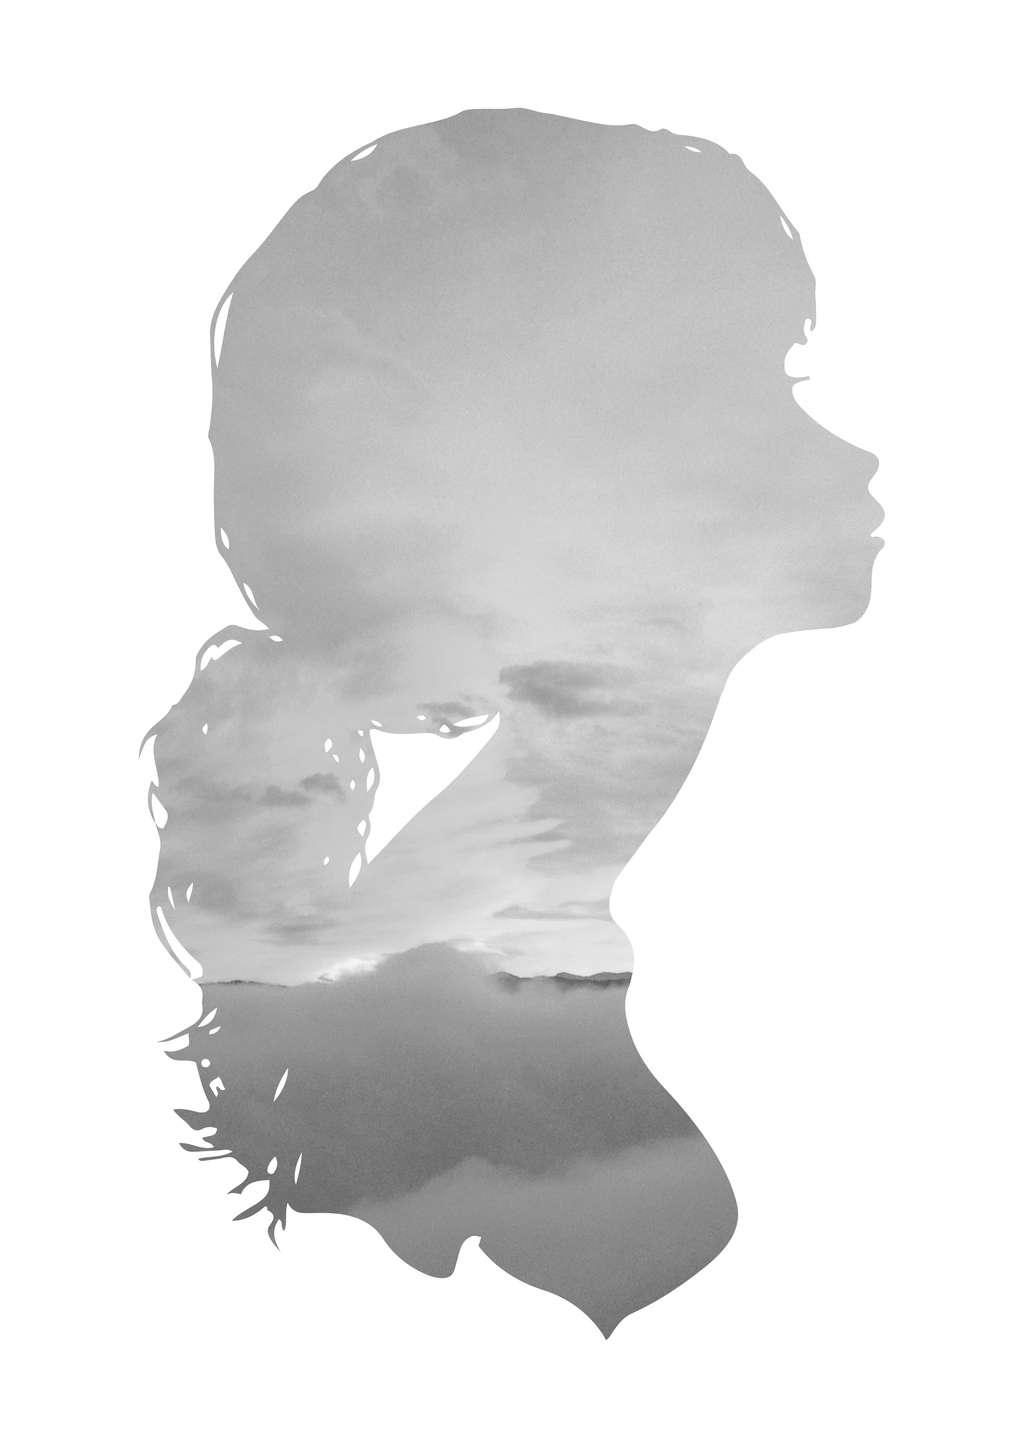 girl's head silhouette